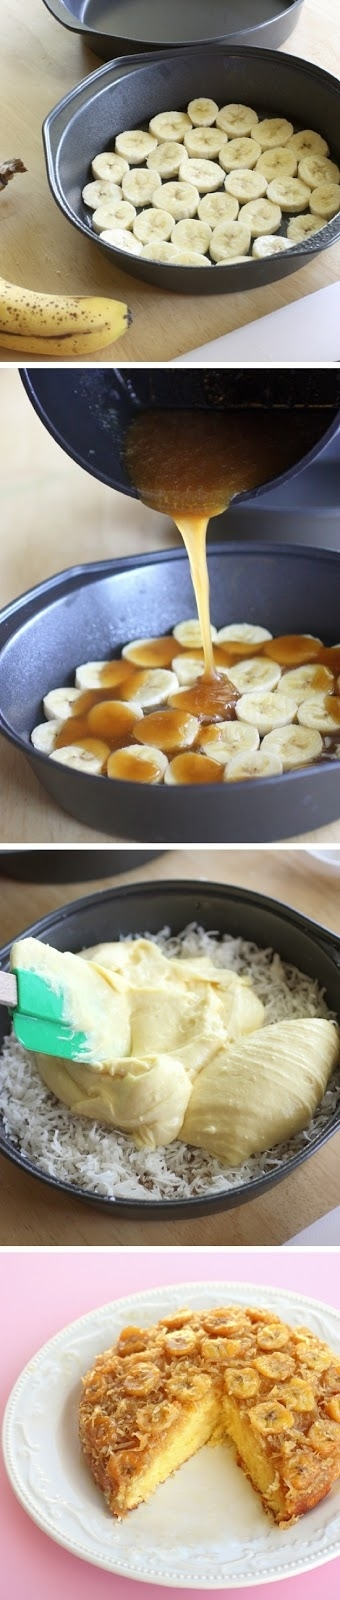 Banana Coconut Upside Down Cake | 15 REALLY EASY RECIPES WORTH PINNING AND TRYING!!!